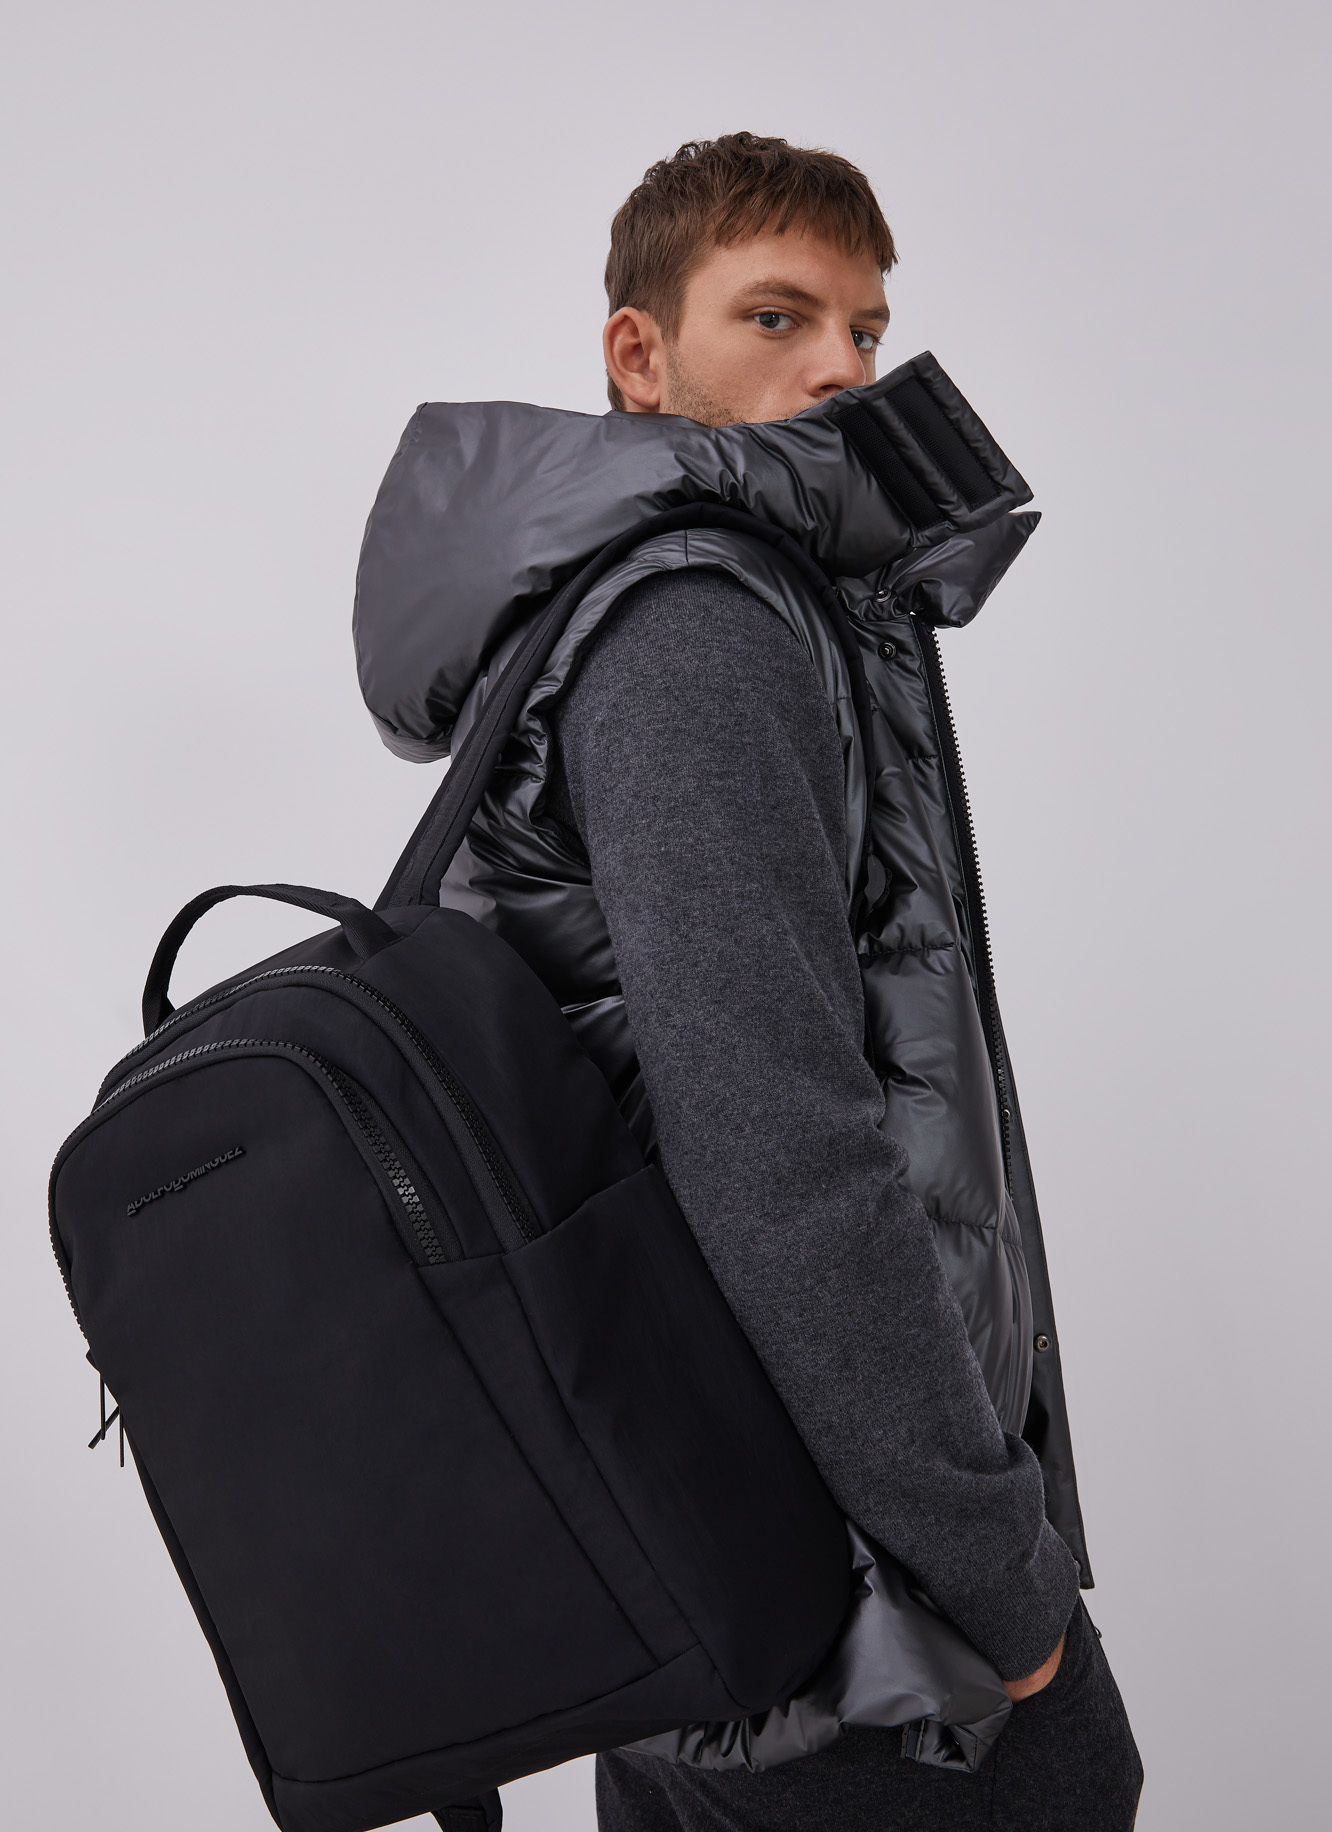 NYLON BACKPACK WITH DOUBLE COMPARTMENT